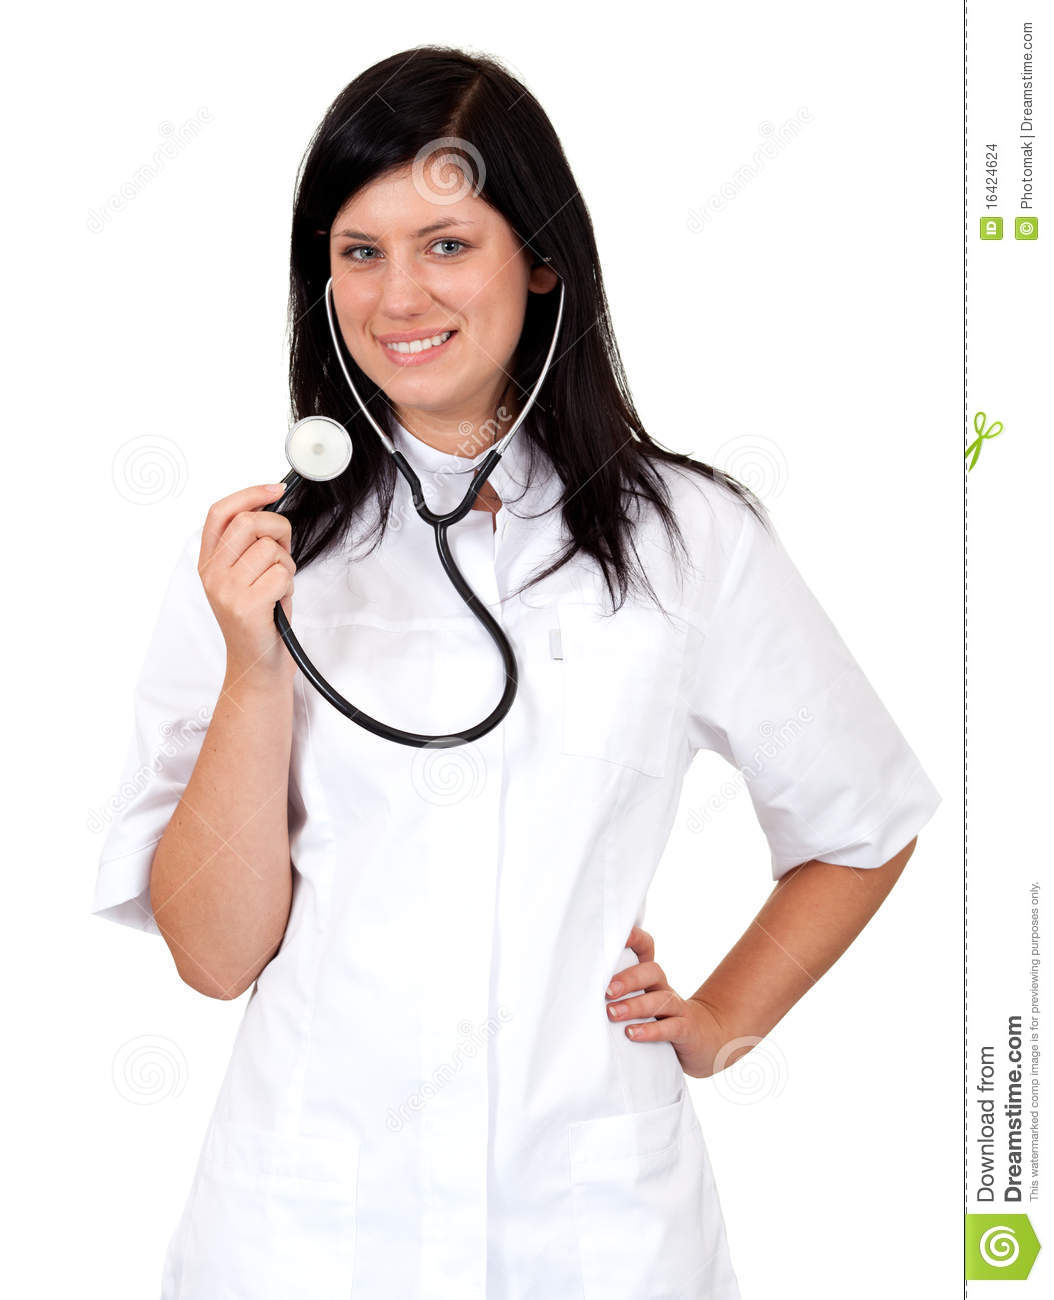 youngest sexy videos of lady doctors